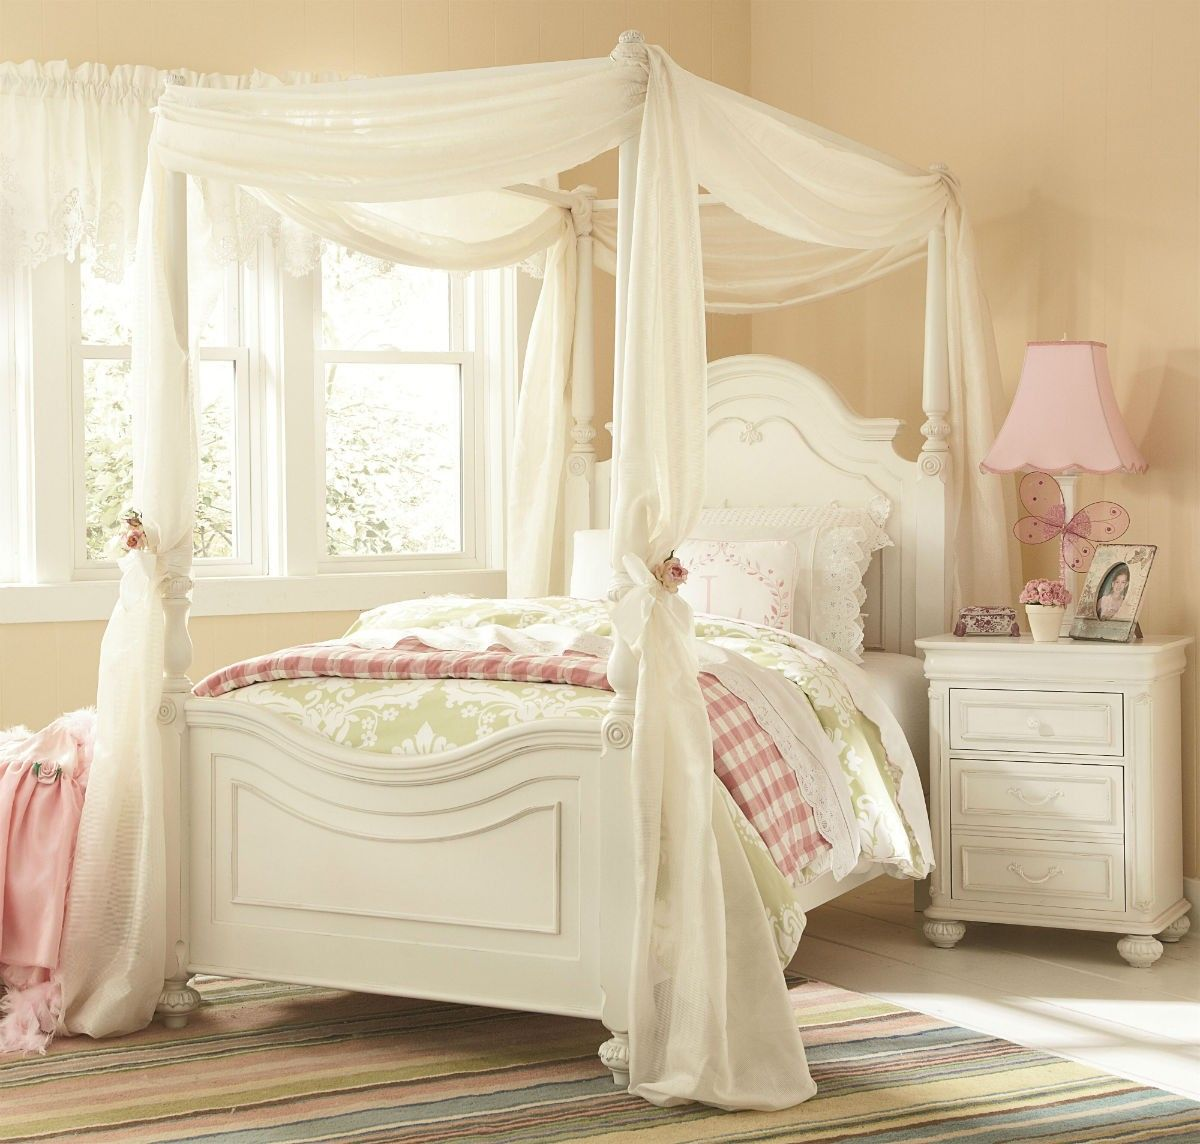 Fabulous Canopy Bed Design Little Princess Tyana Bedroom Sets